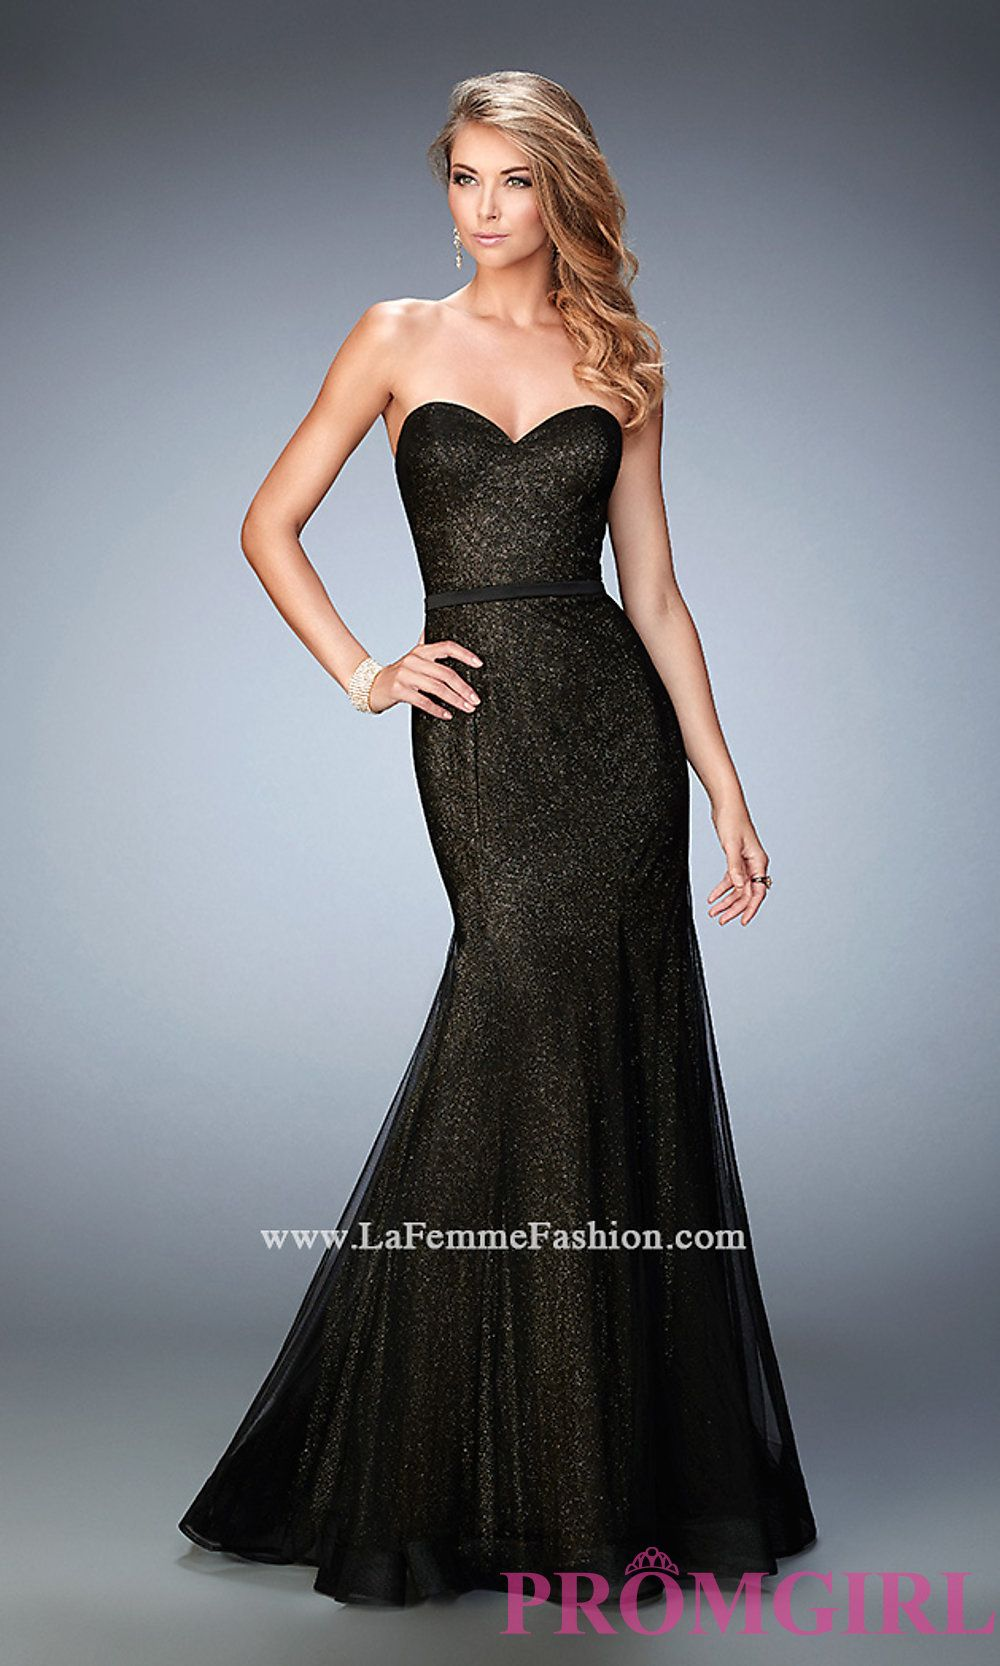 Long strapless glitter mermaid prom dress by la femme lf